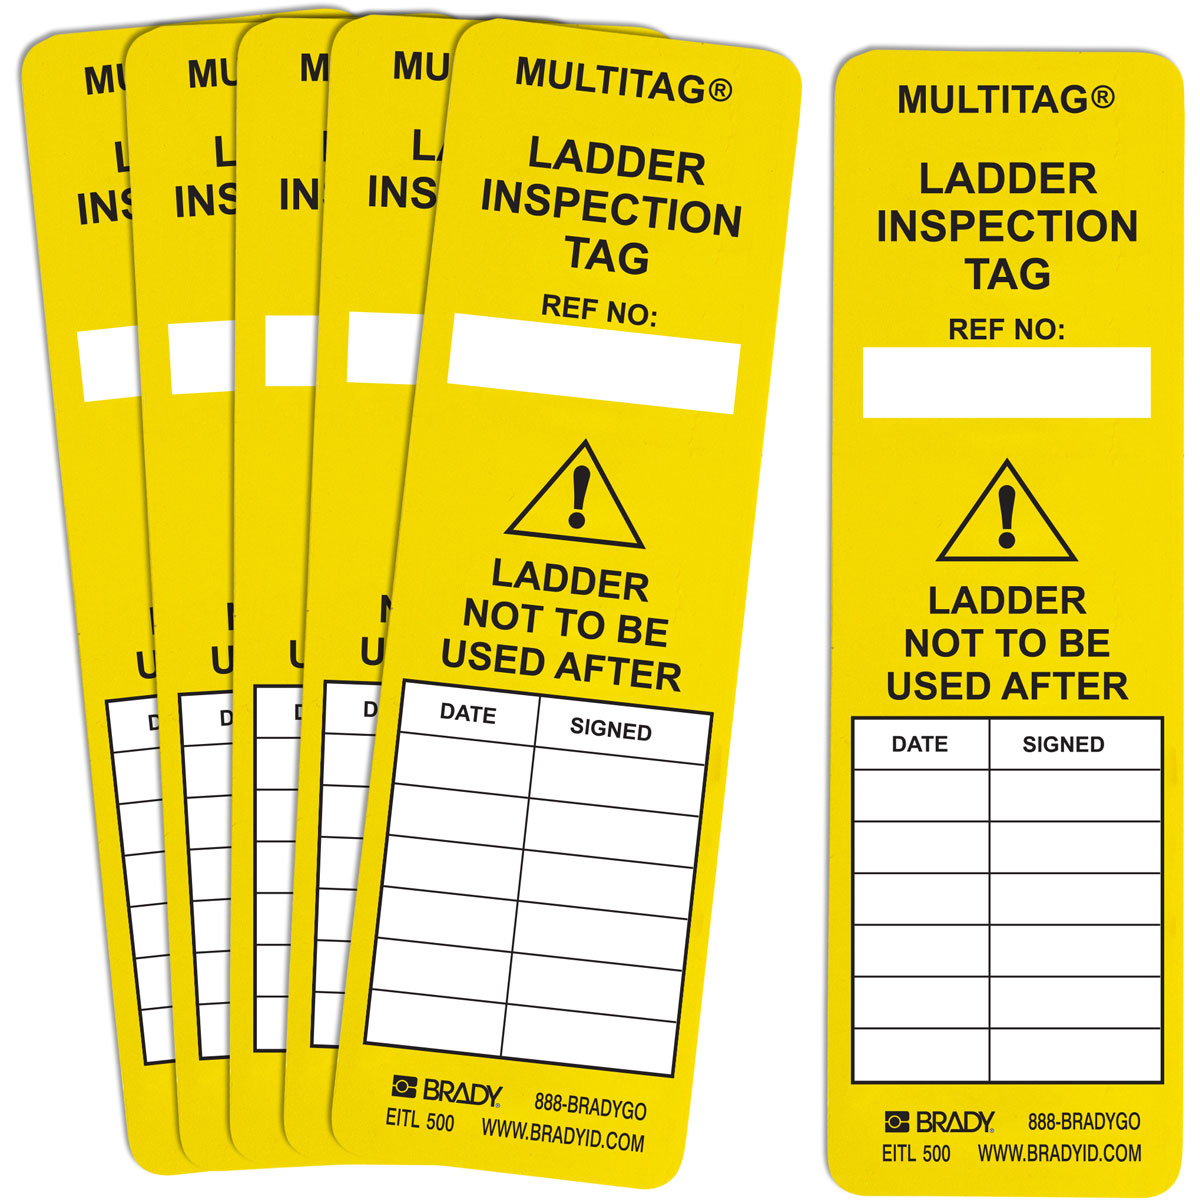 Brady Part Lad Eitl 500 107937 Laddertag Inserts Multitag